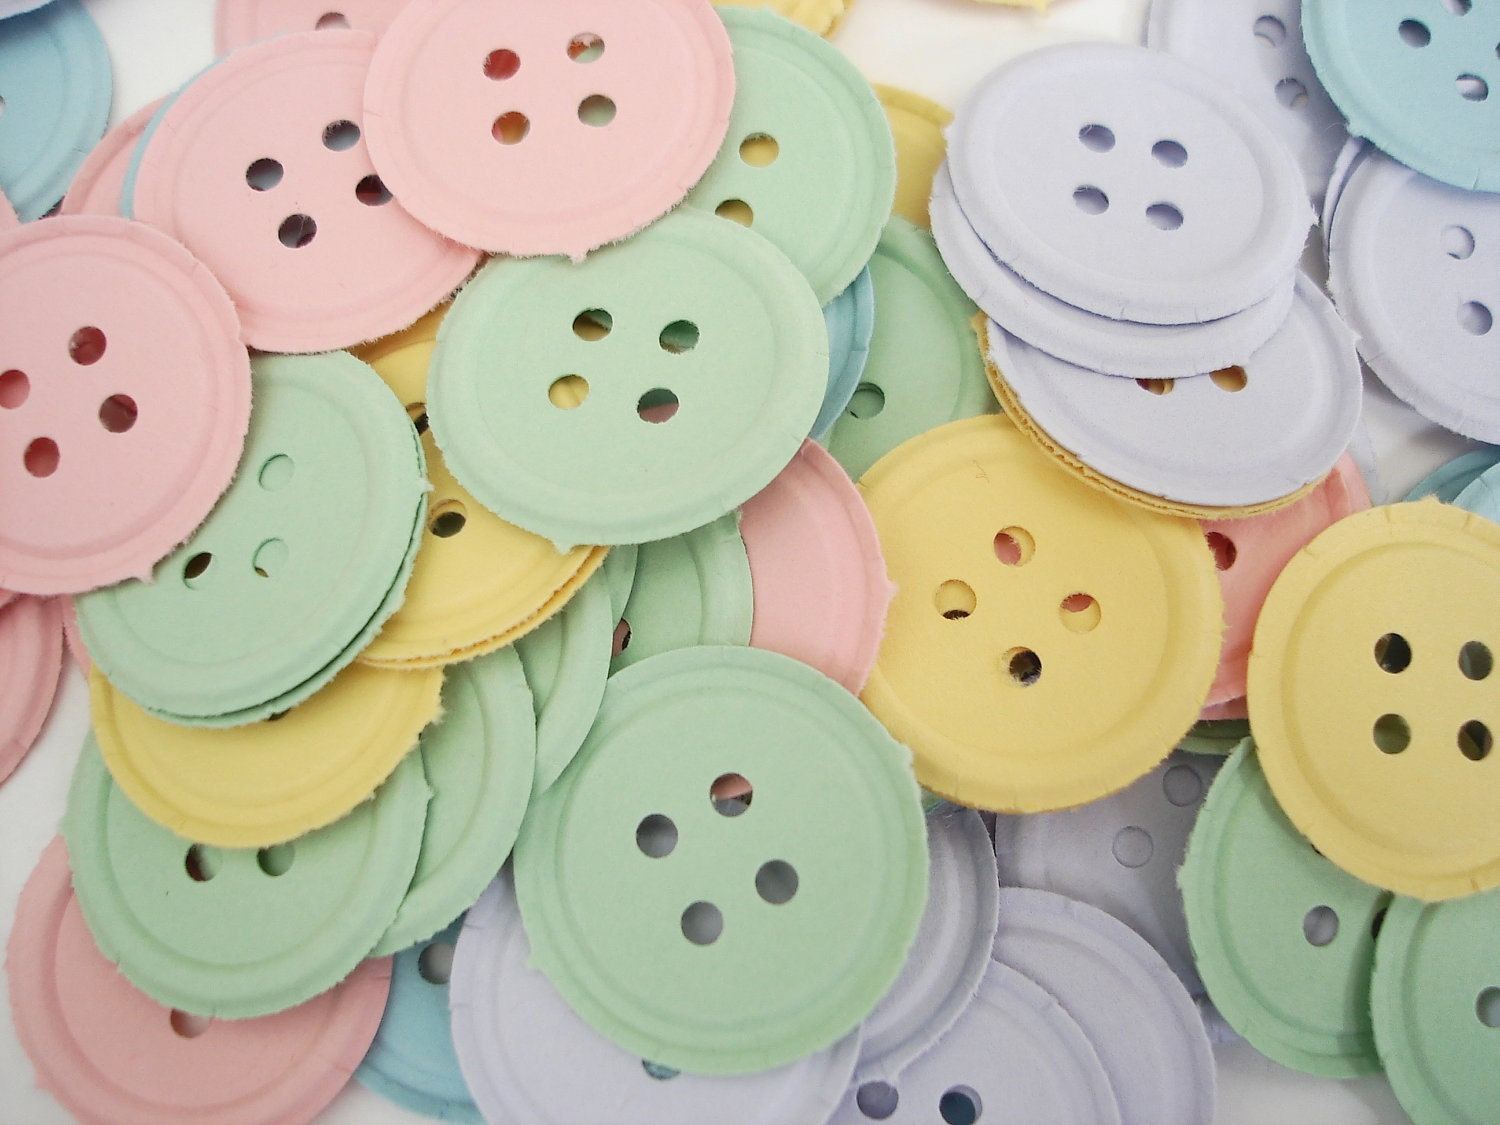 100 pastel button punch die cut scrapbooking embellishments for Decoration or embellishment crossword